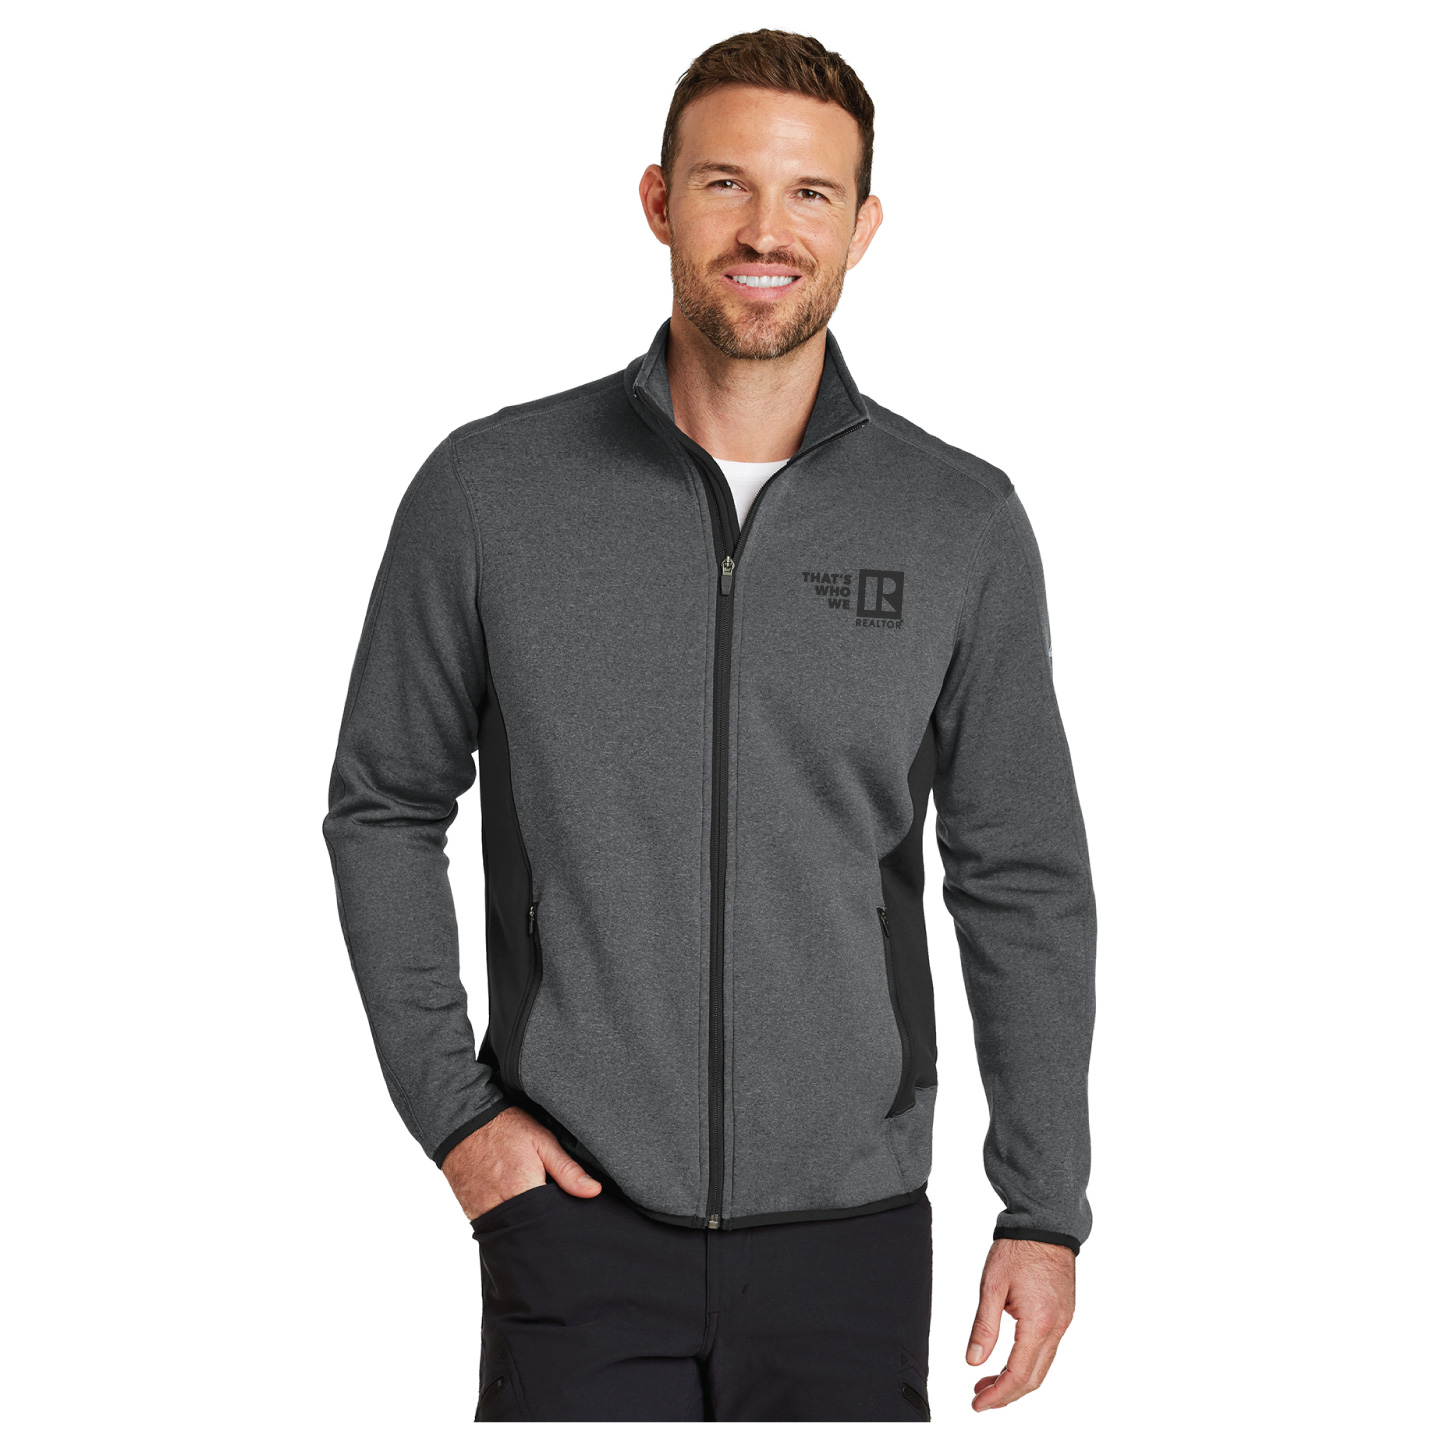 """Thats Who We R"" Mens Eddie Bauer Fleece Jacket Jacket, Thats Who, Fleece, Brand, Warm, TWWR, Gift, President, Board, Store, Association,"